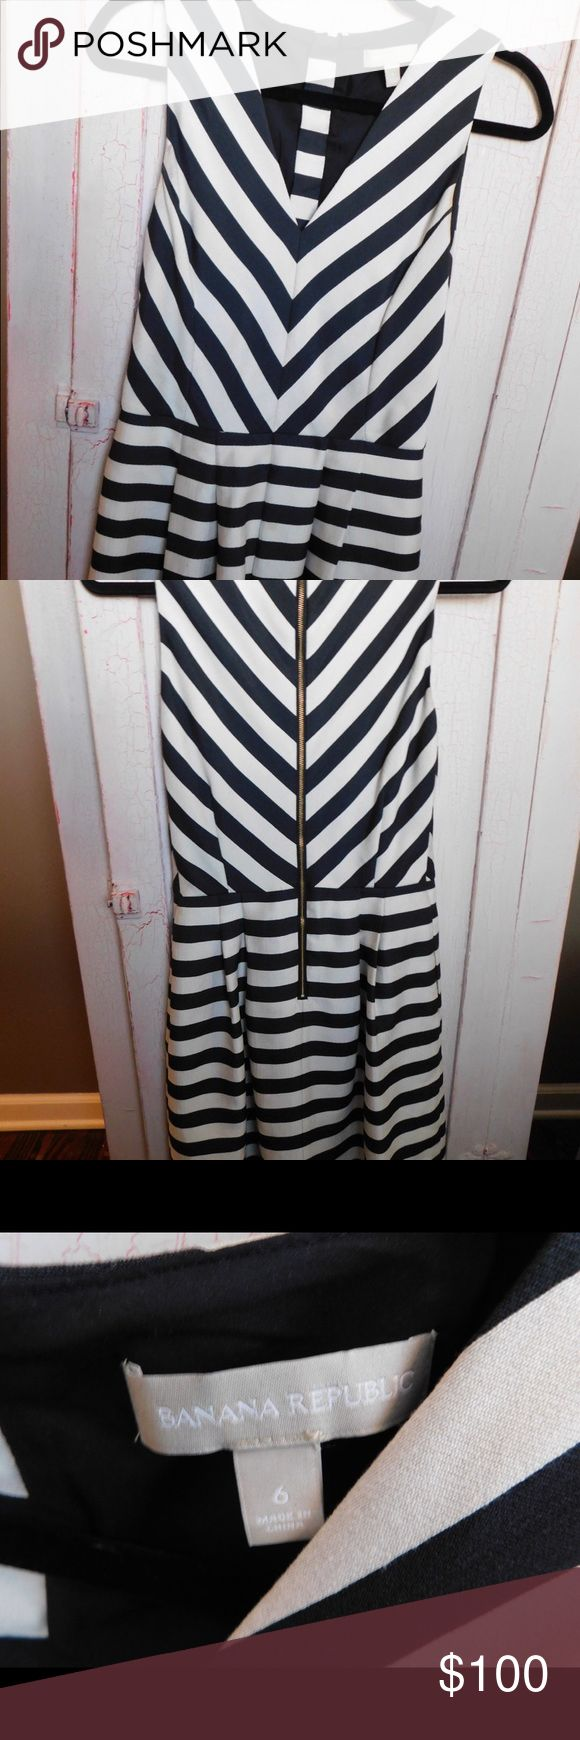 Banana Republic Striped Formal Dress Only worn once. Great condition. Gold zipper up the back. Lined. Banana Republic Dresses